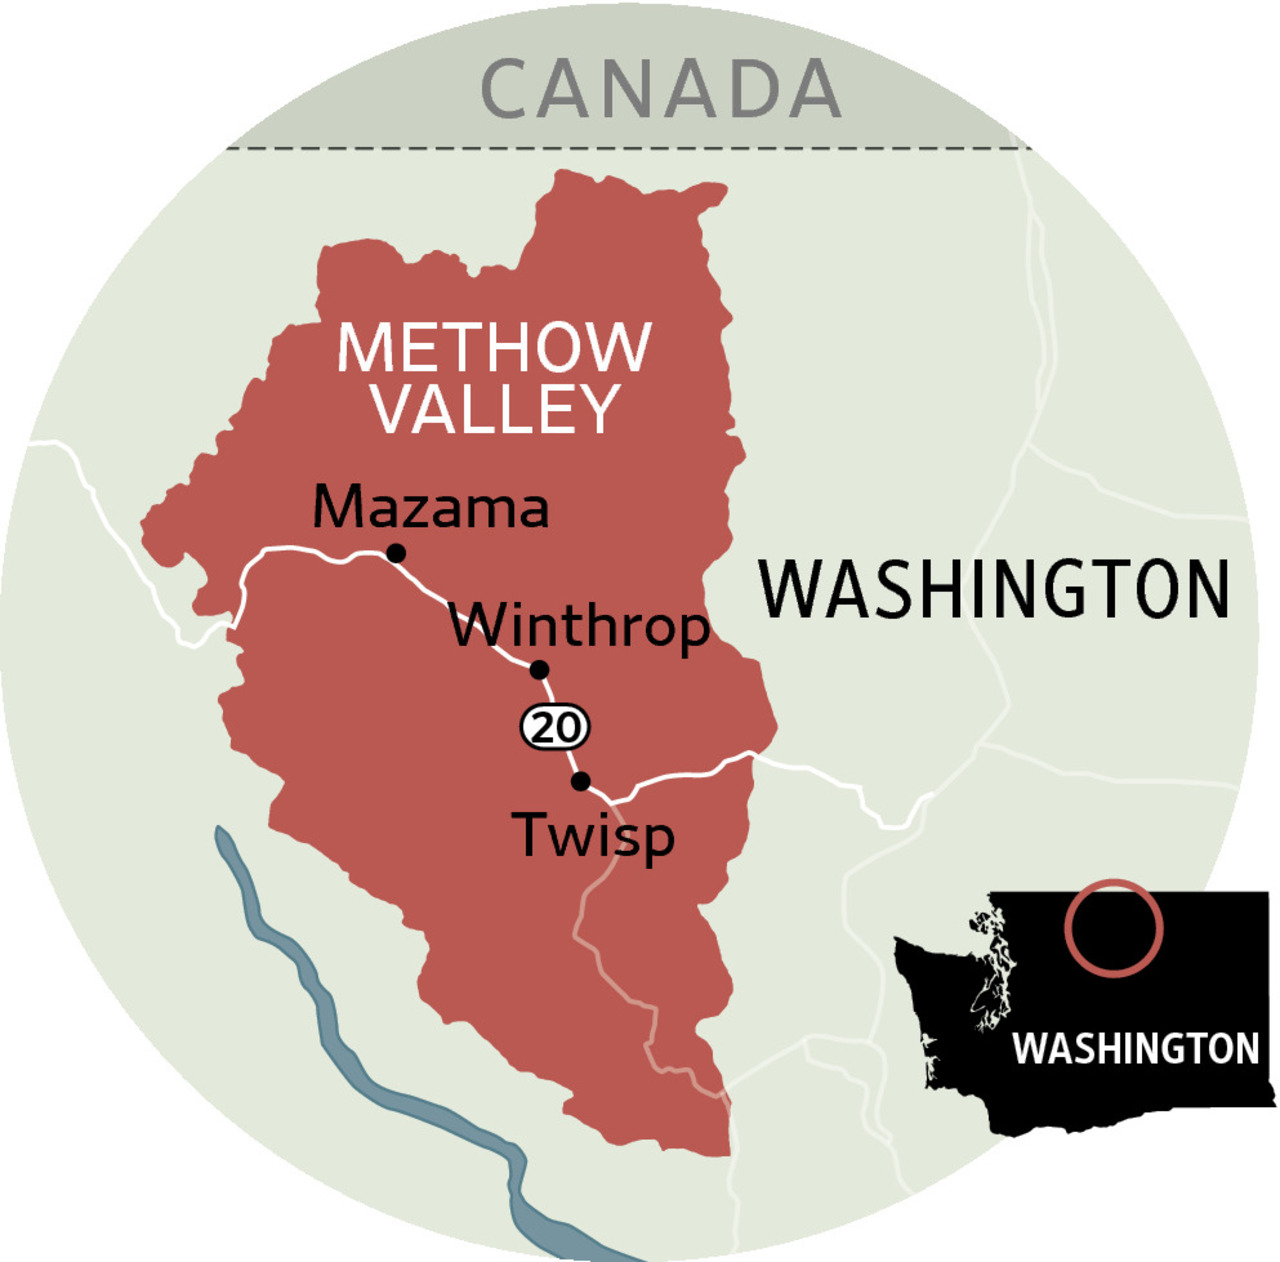 Methow Valley is some 200 miles east of Seattle, part of a remote wilderness.